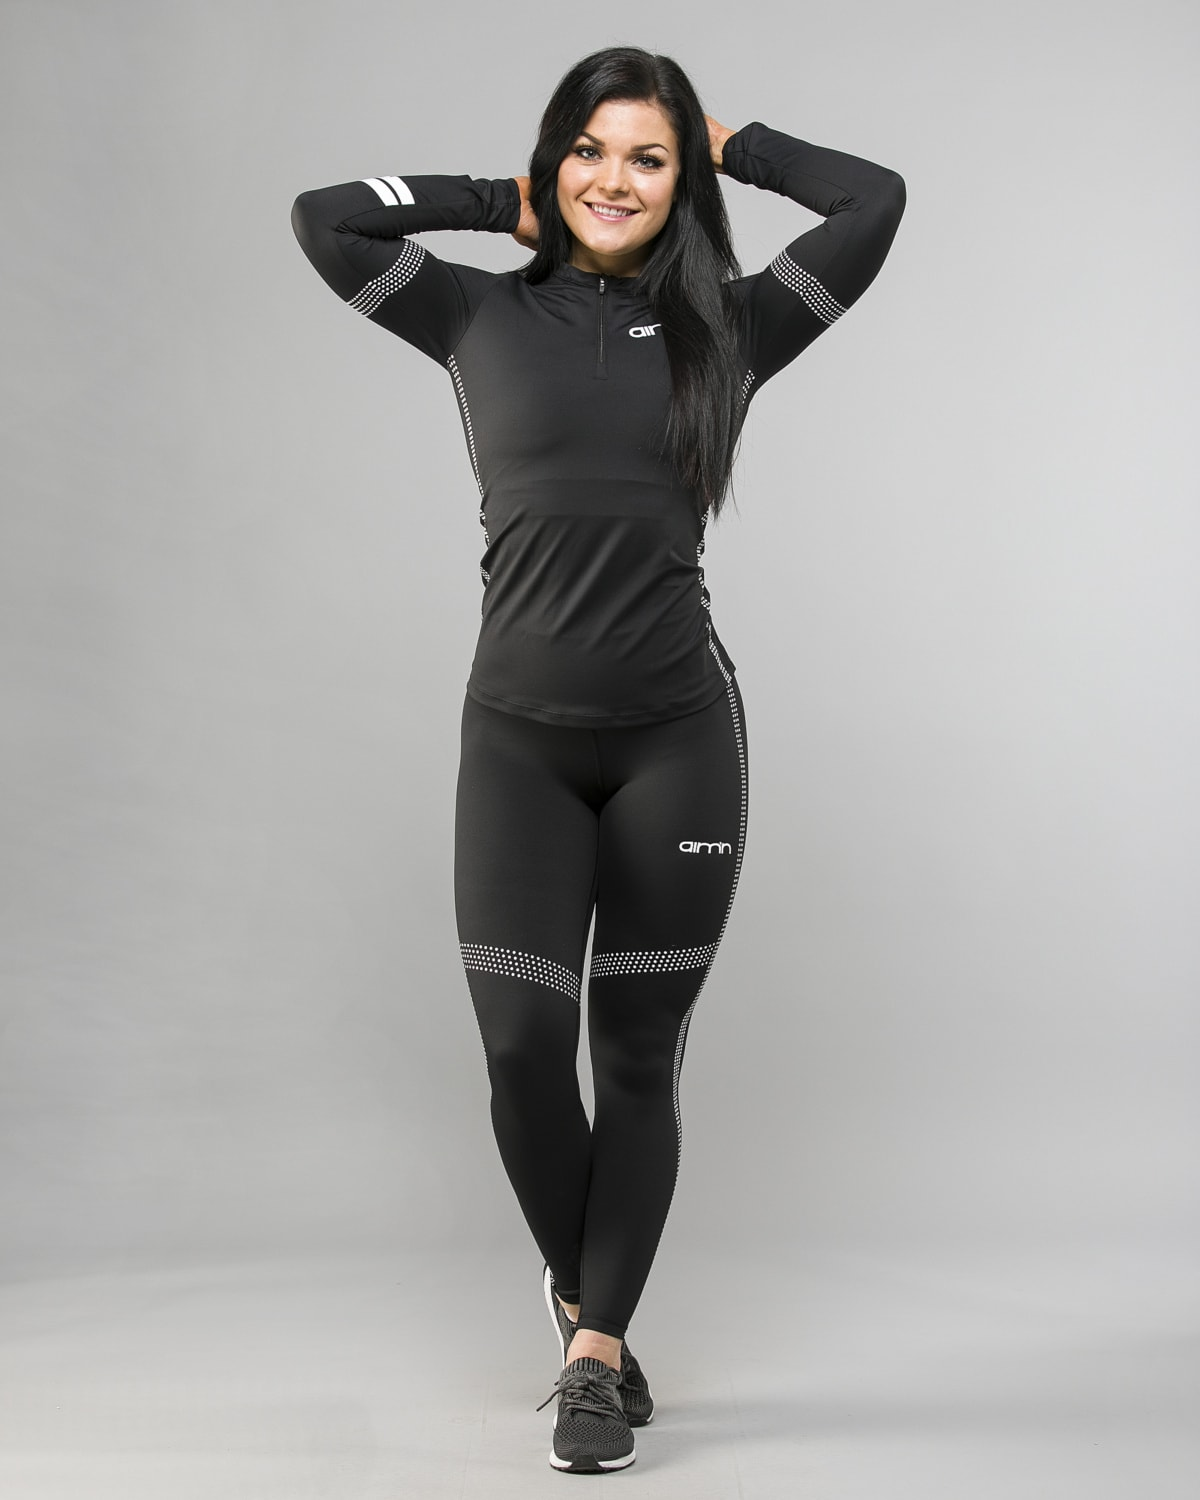 Aim'n Vision Long Sleeve and Tights b